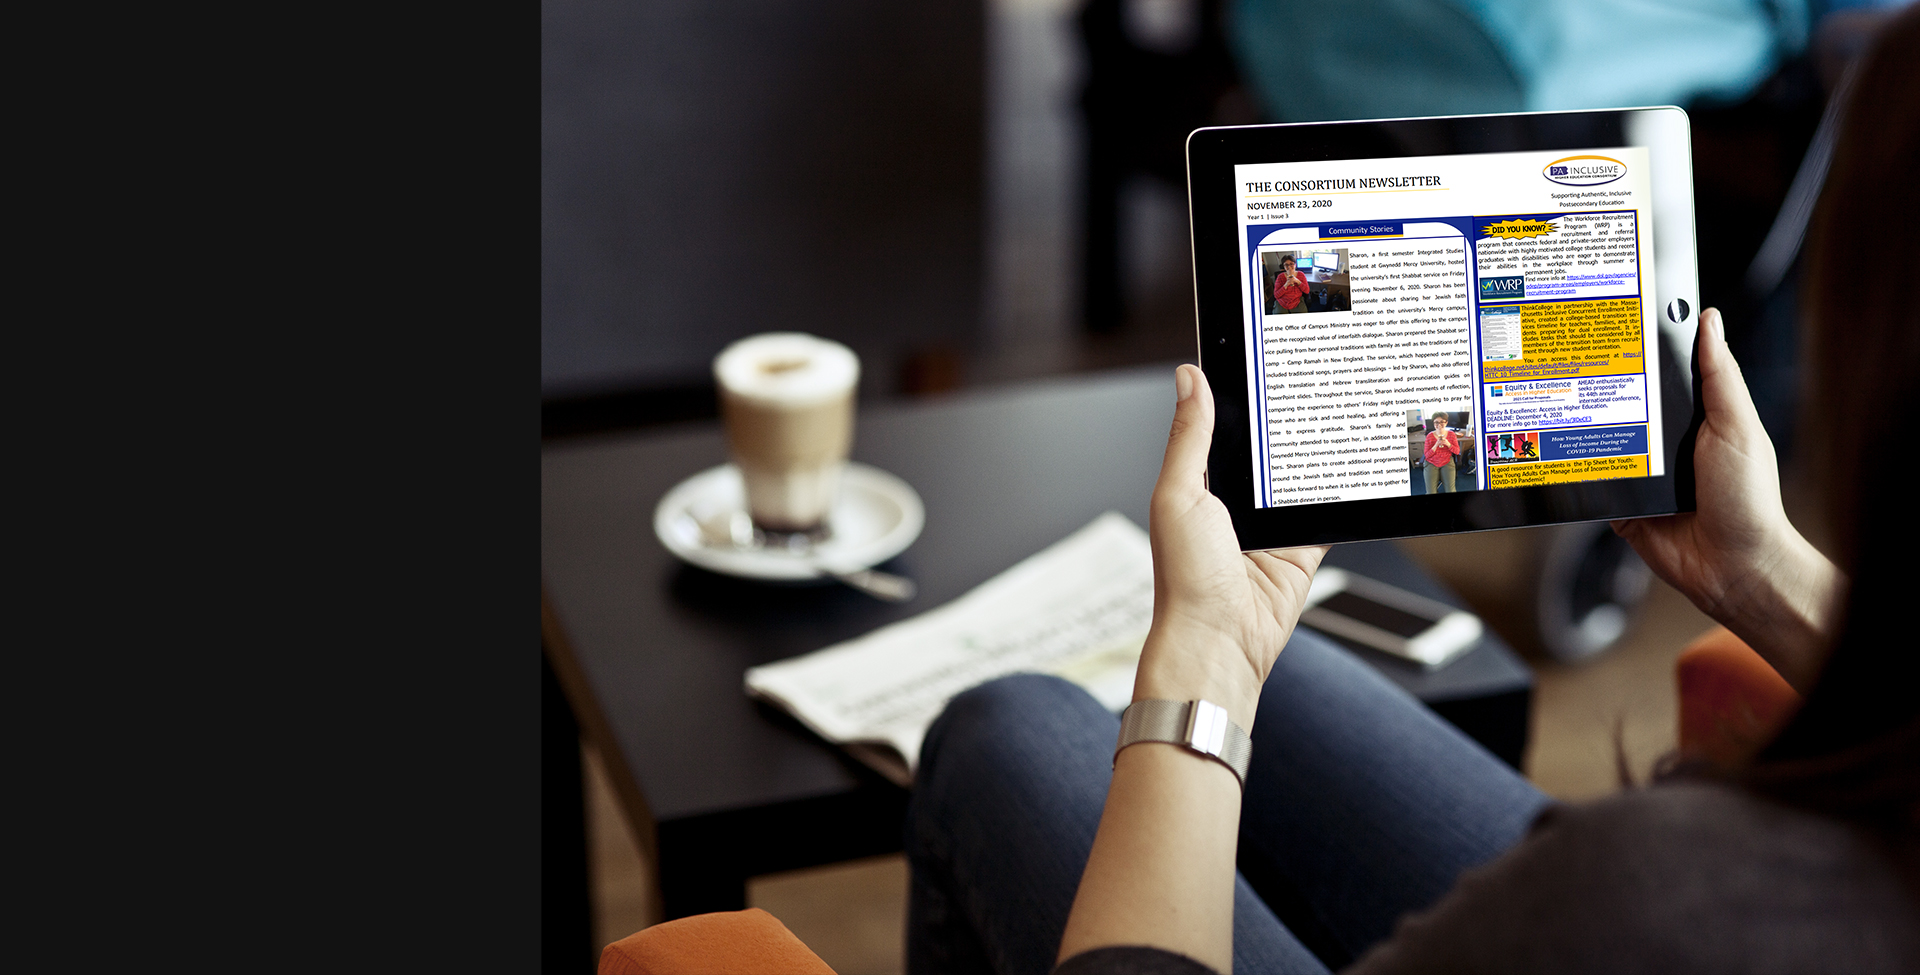 Newsletters - Lady Holding tablet reading newsletter